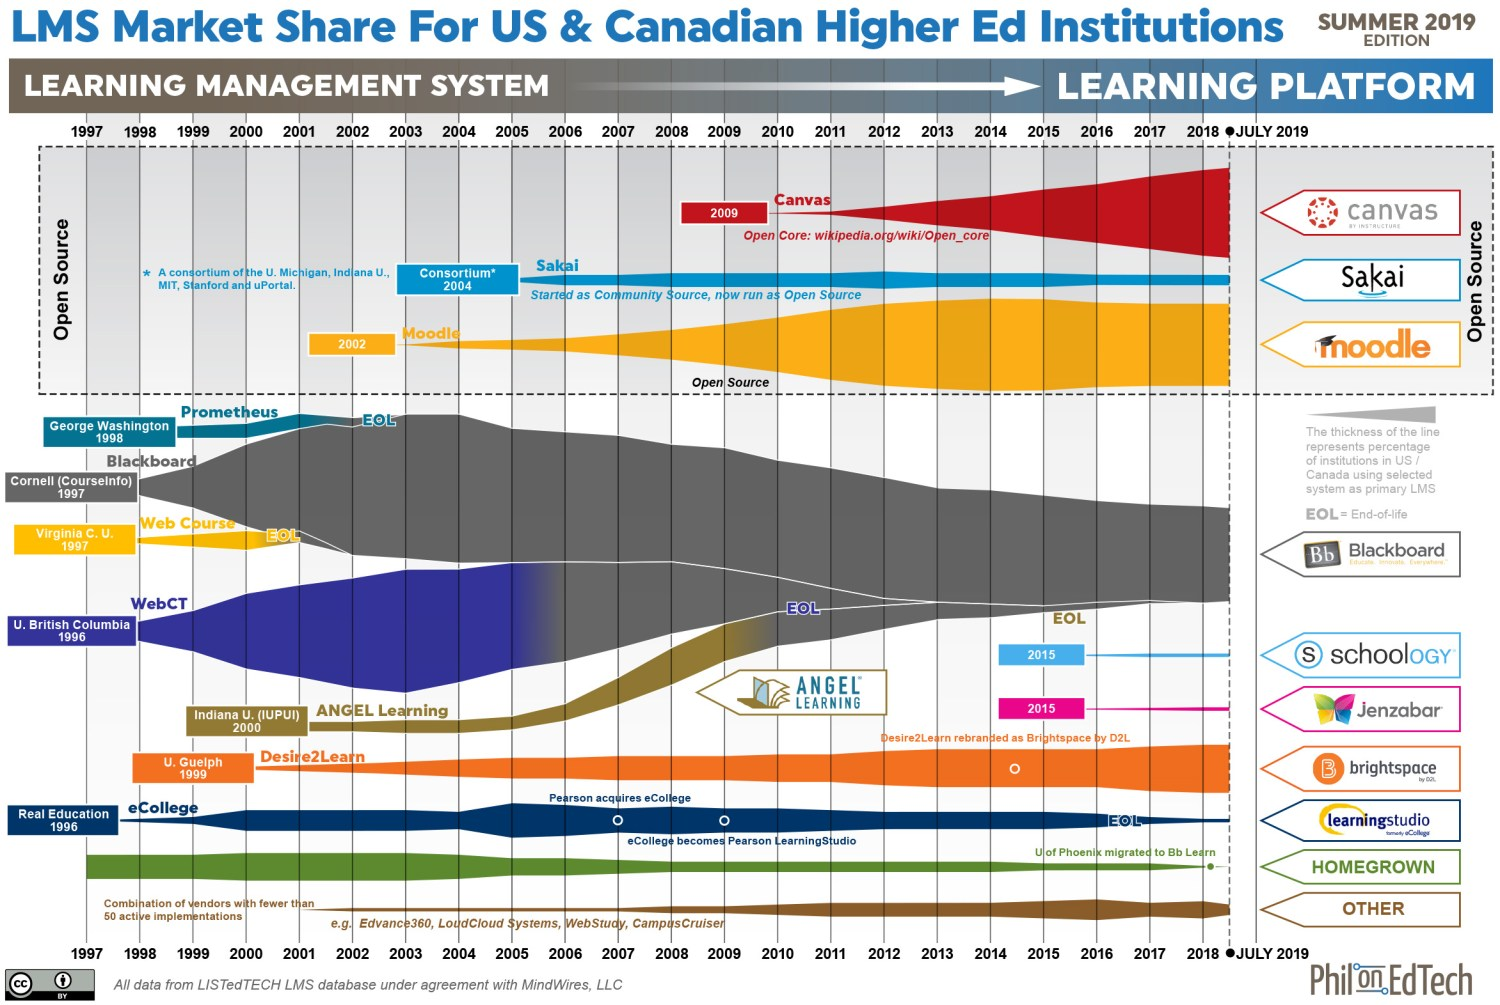 North American Higher Ed LMS Market share for mid 2019, based on number of institutions using each solution as primary system.